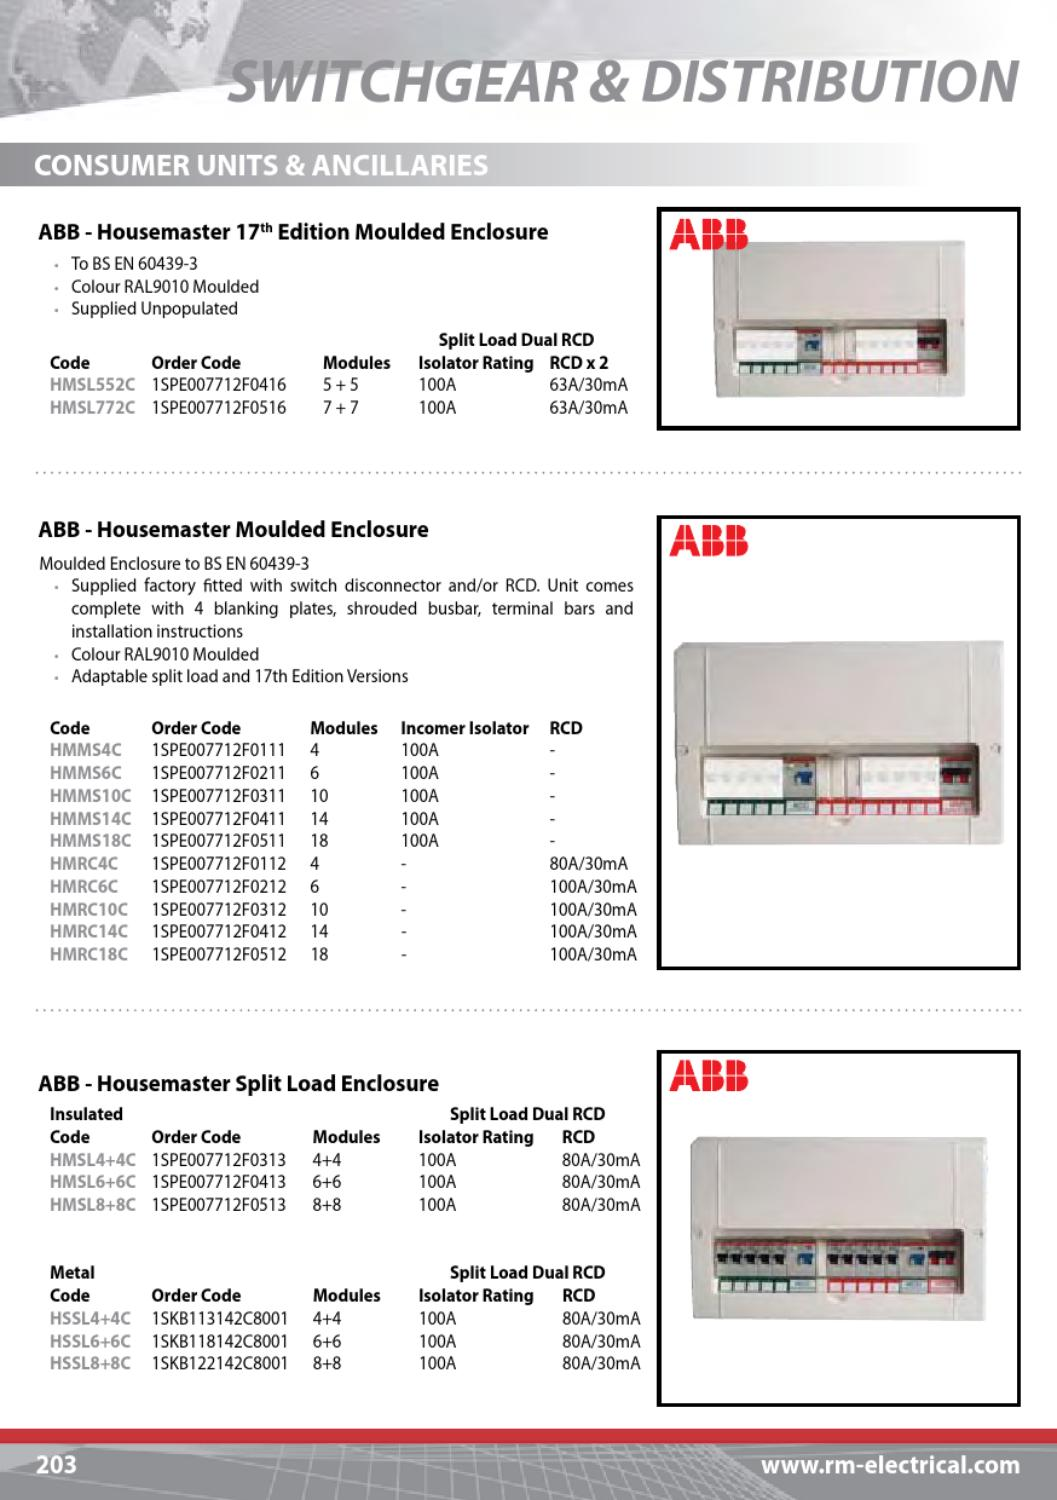 Outstanding split load consumer unit wiring diagram elaboration famous split load consumer unit wiring diagram sketch electrical asfbconference2016 Choice Image